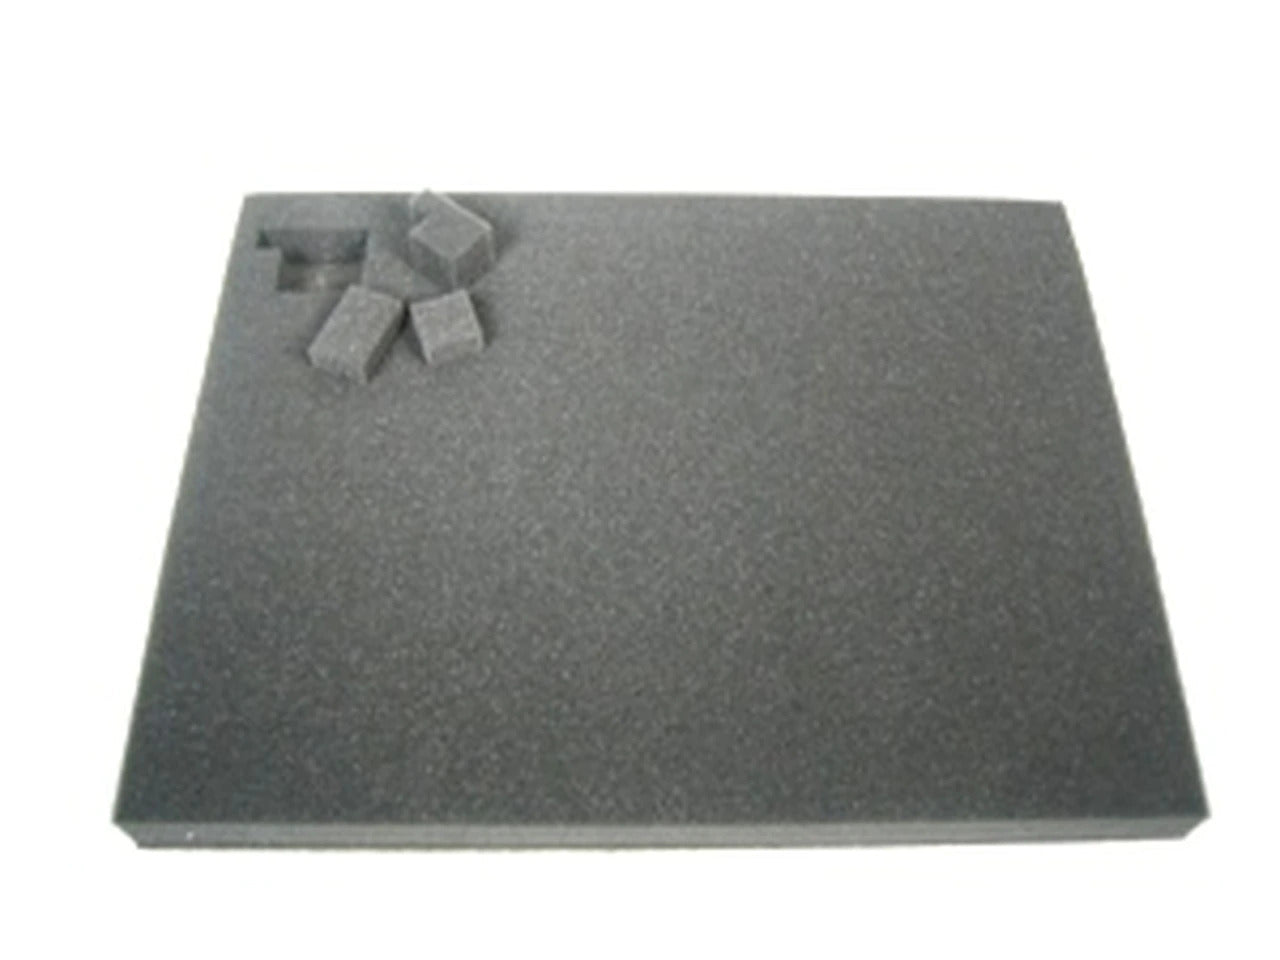 Bf Foam Pluck Large (15.5 X 12) 3.5"